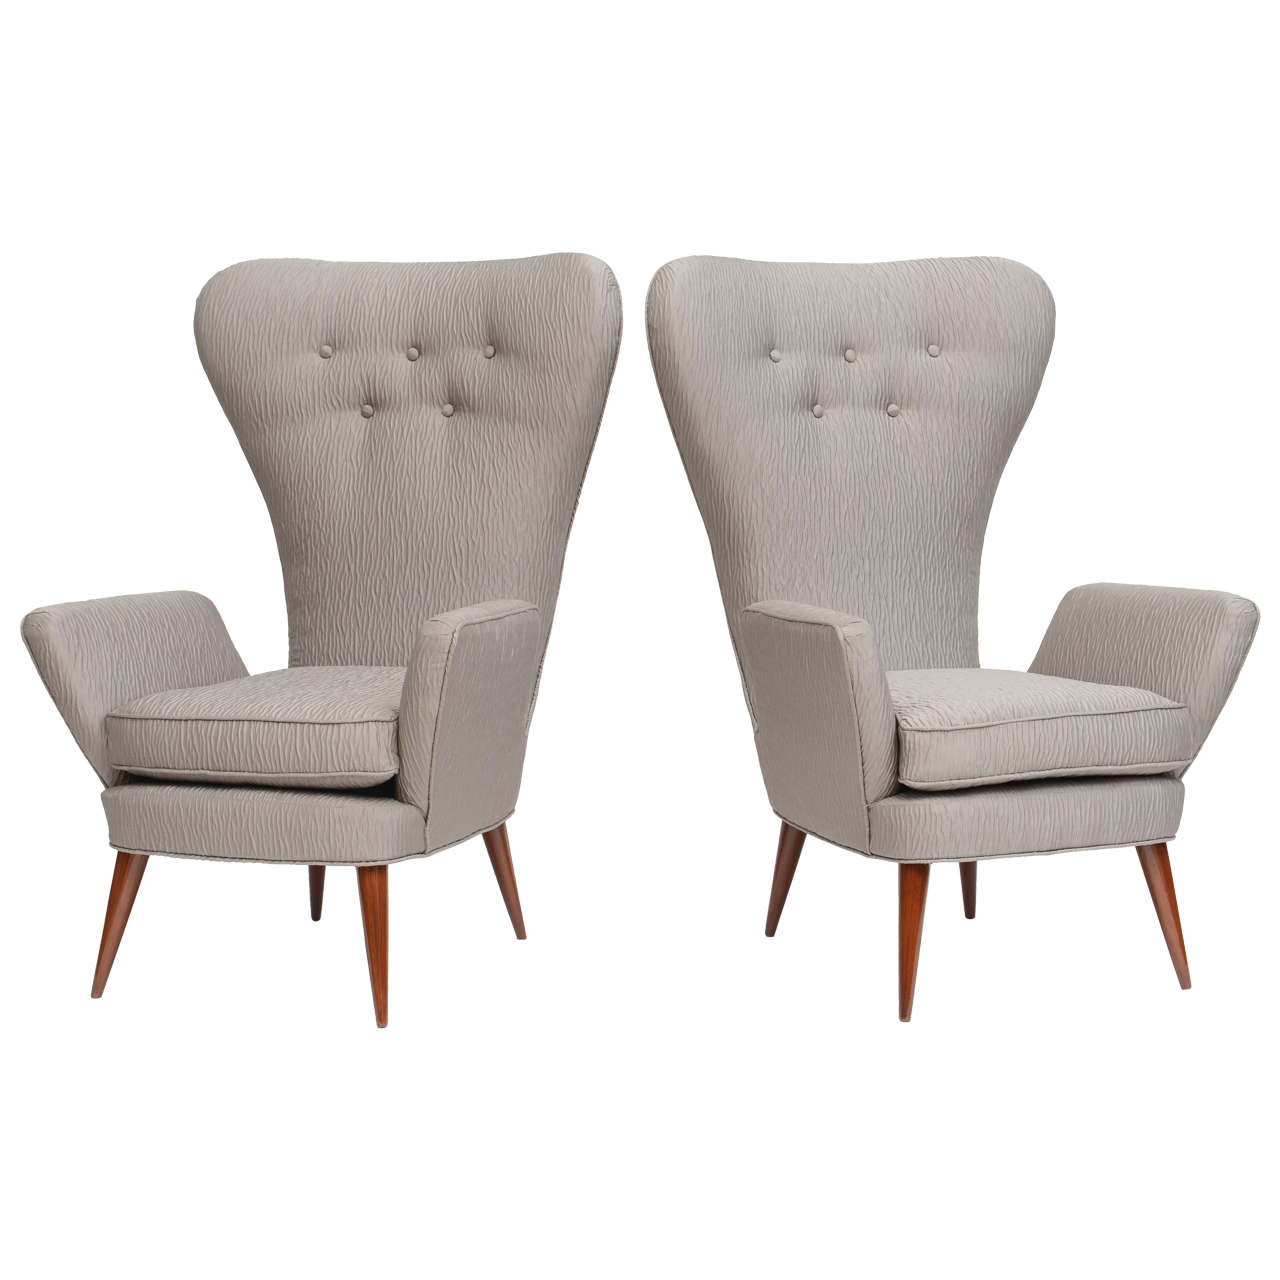 pair of italian modern high back chairs italy for sale at stdibs - pair of italian modern high back chairs italy